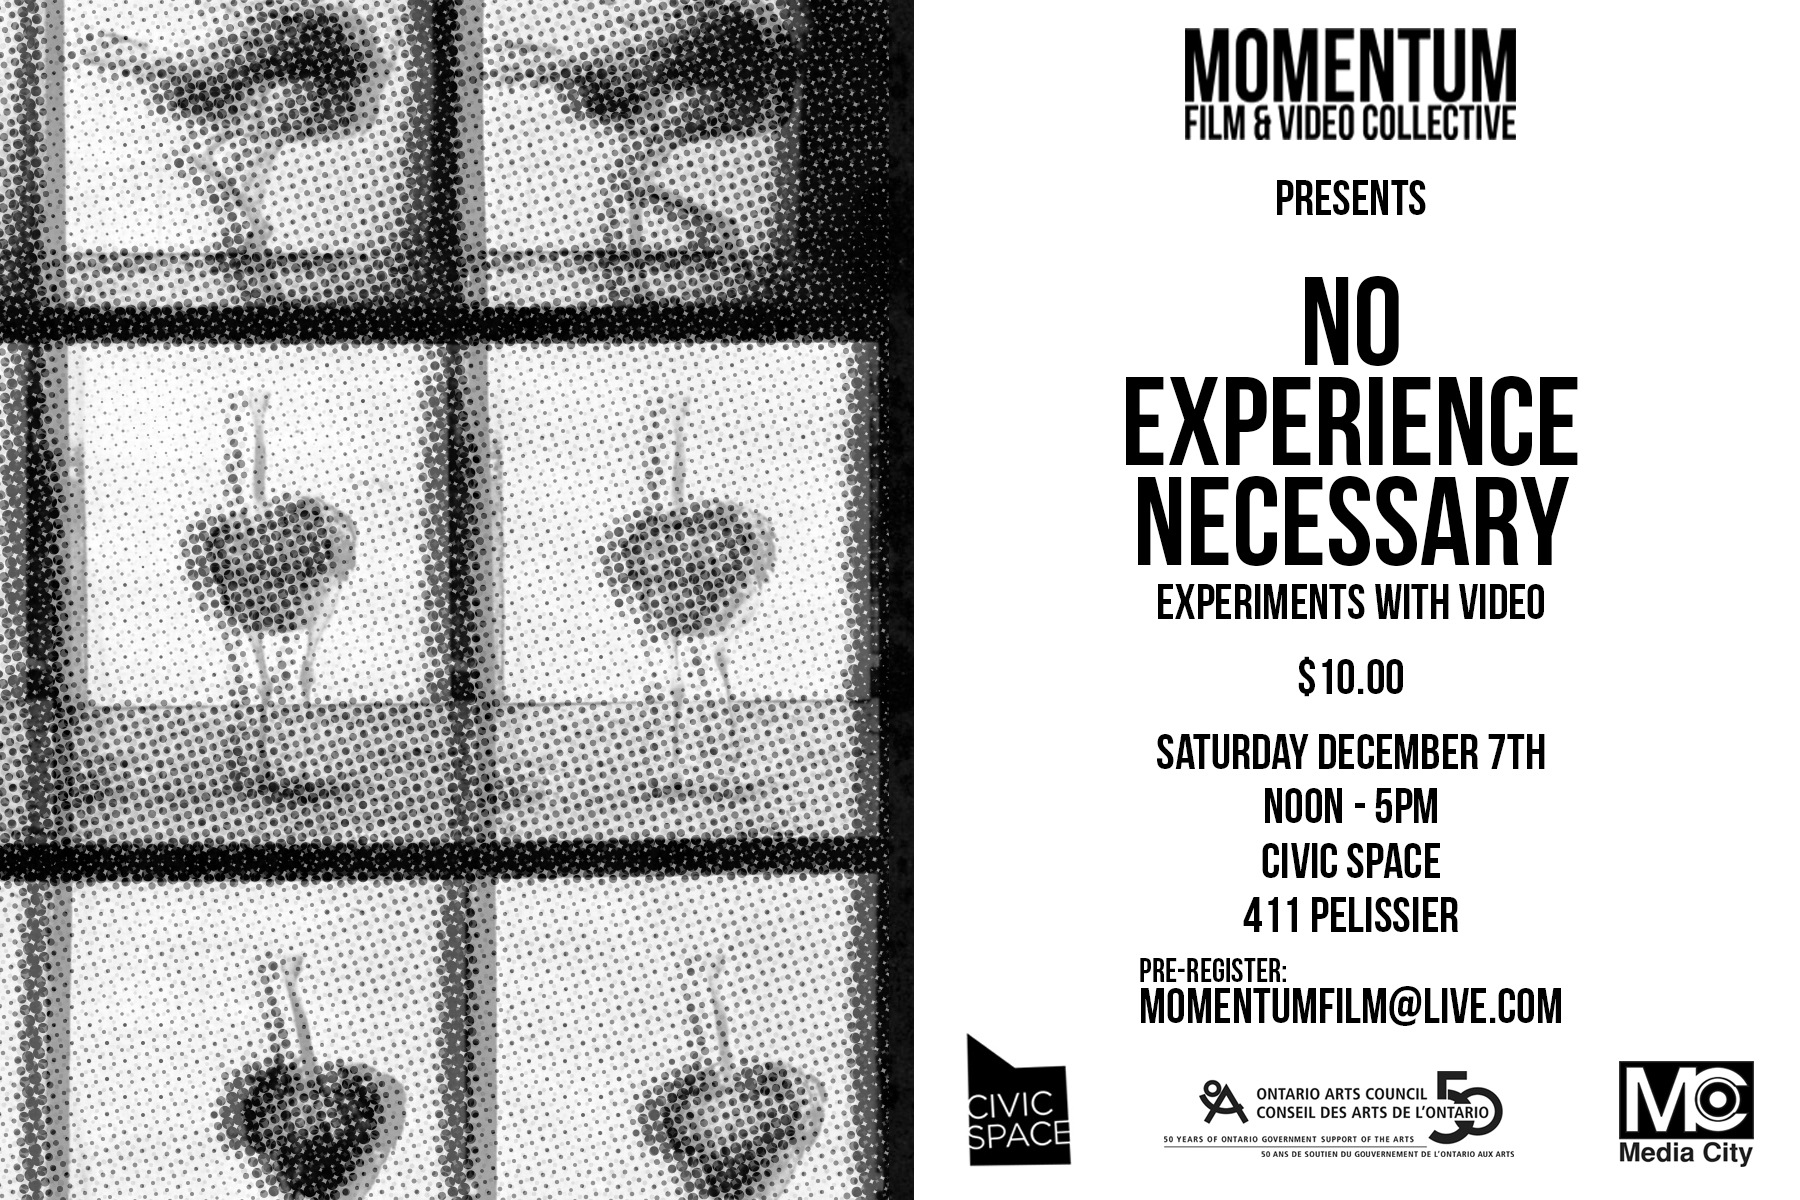 No Experience Necessary: A Workshop Series by Momentum Film & Video Collective